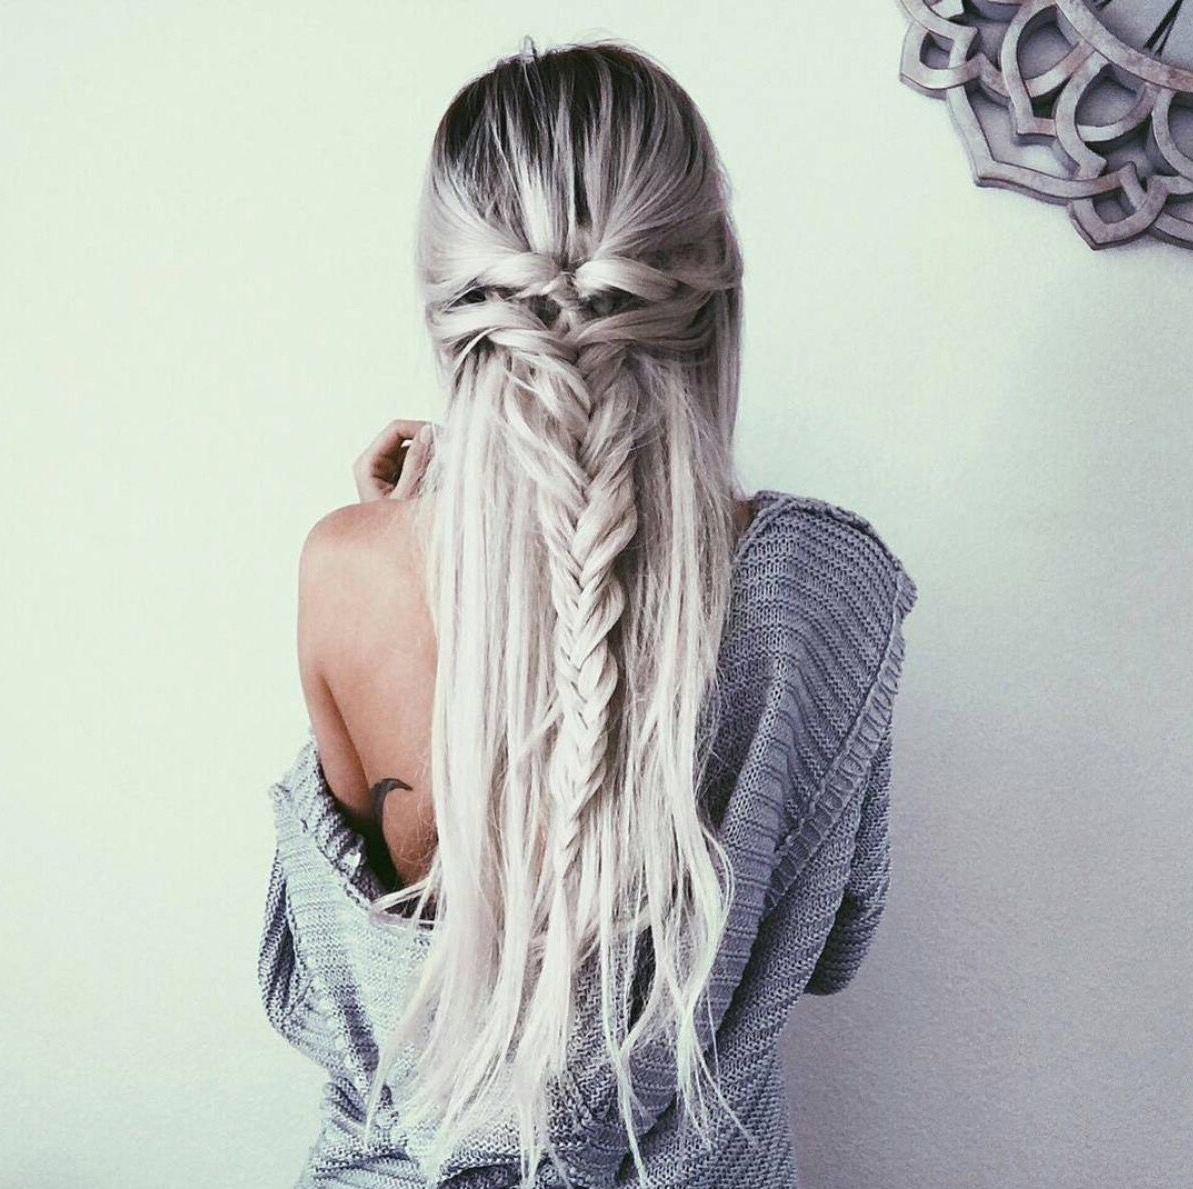 Widely Used Elegant Blonde Mermaid Braid Hairstyles With Twist Braid To Twist Fishtail Braid (View 20 of 20)